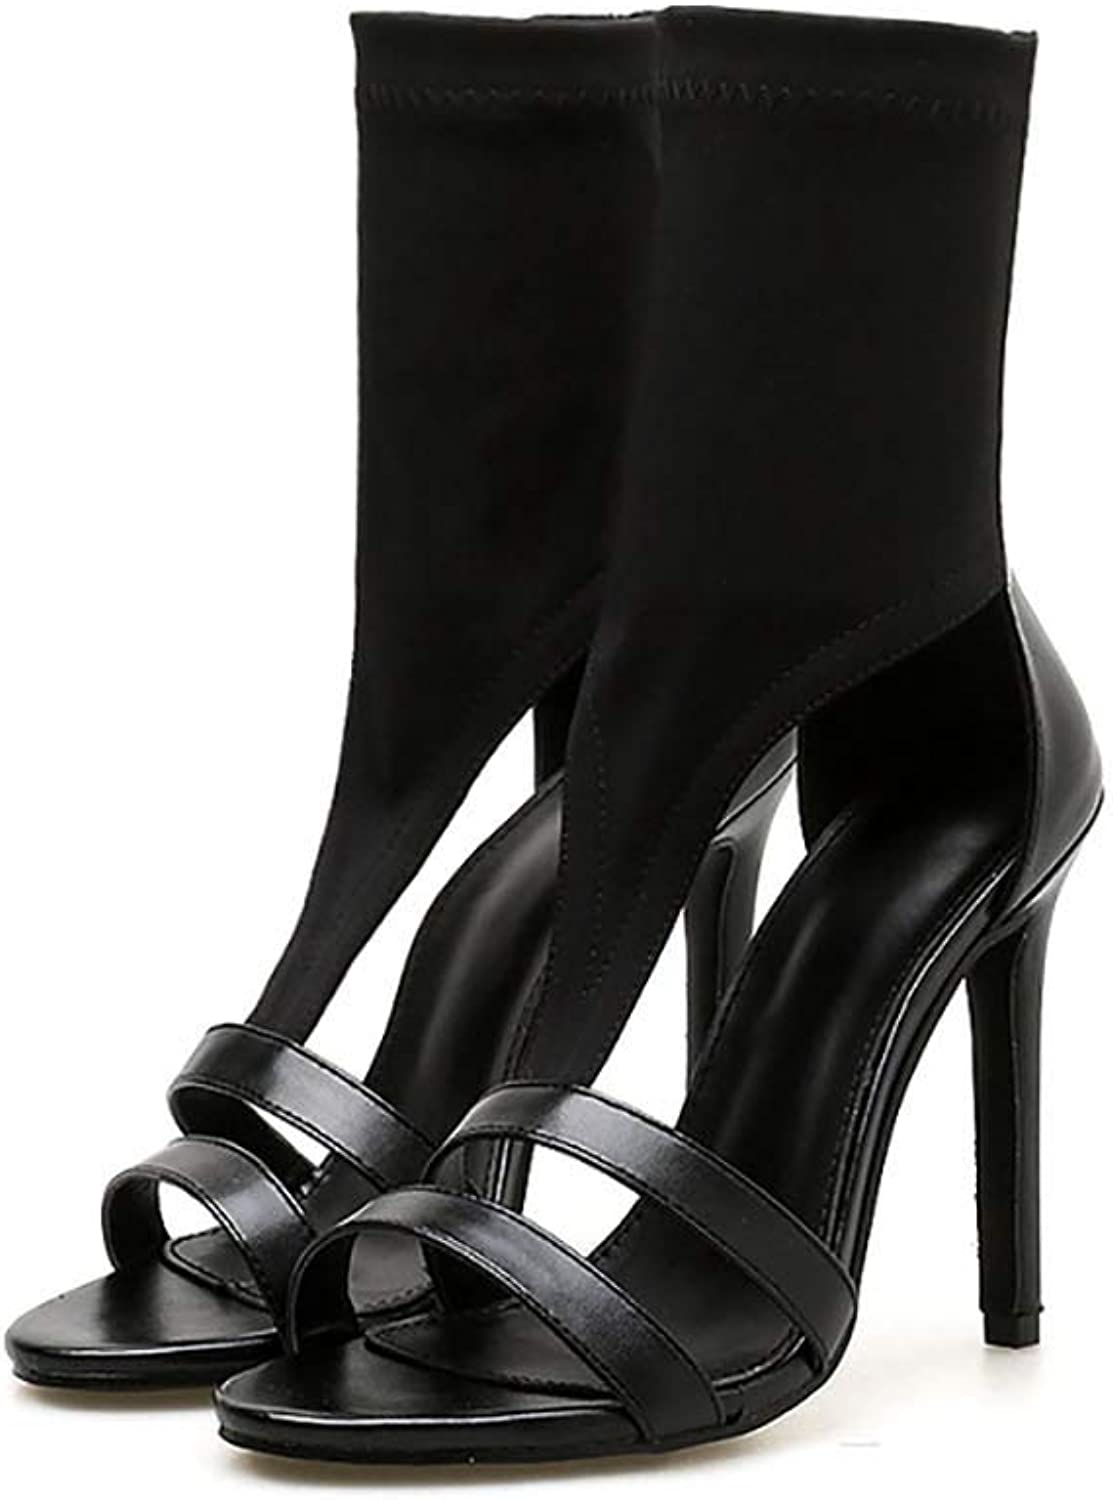 Womens Lace Up High Heel, Womens Strappy Cut Out High Heel Ladies Back Lace Up Peep Toe Sandals shoes Open Toe Lace Up Heeled Sandals,38